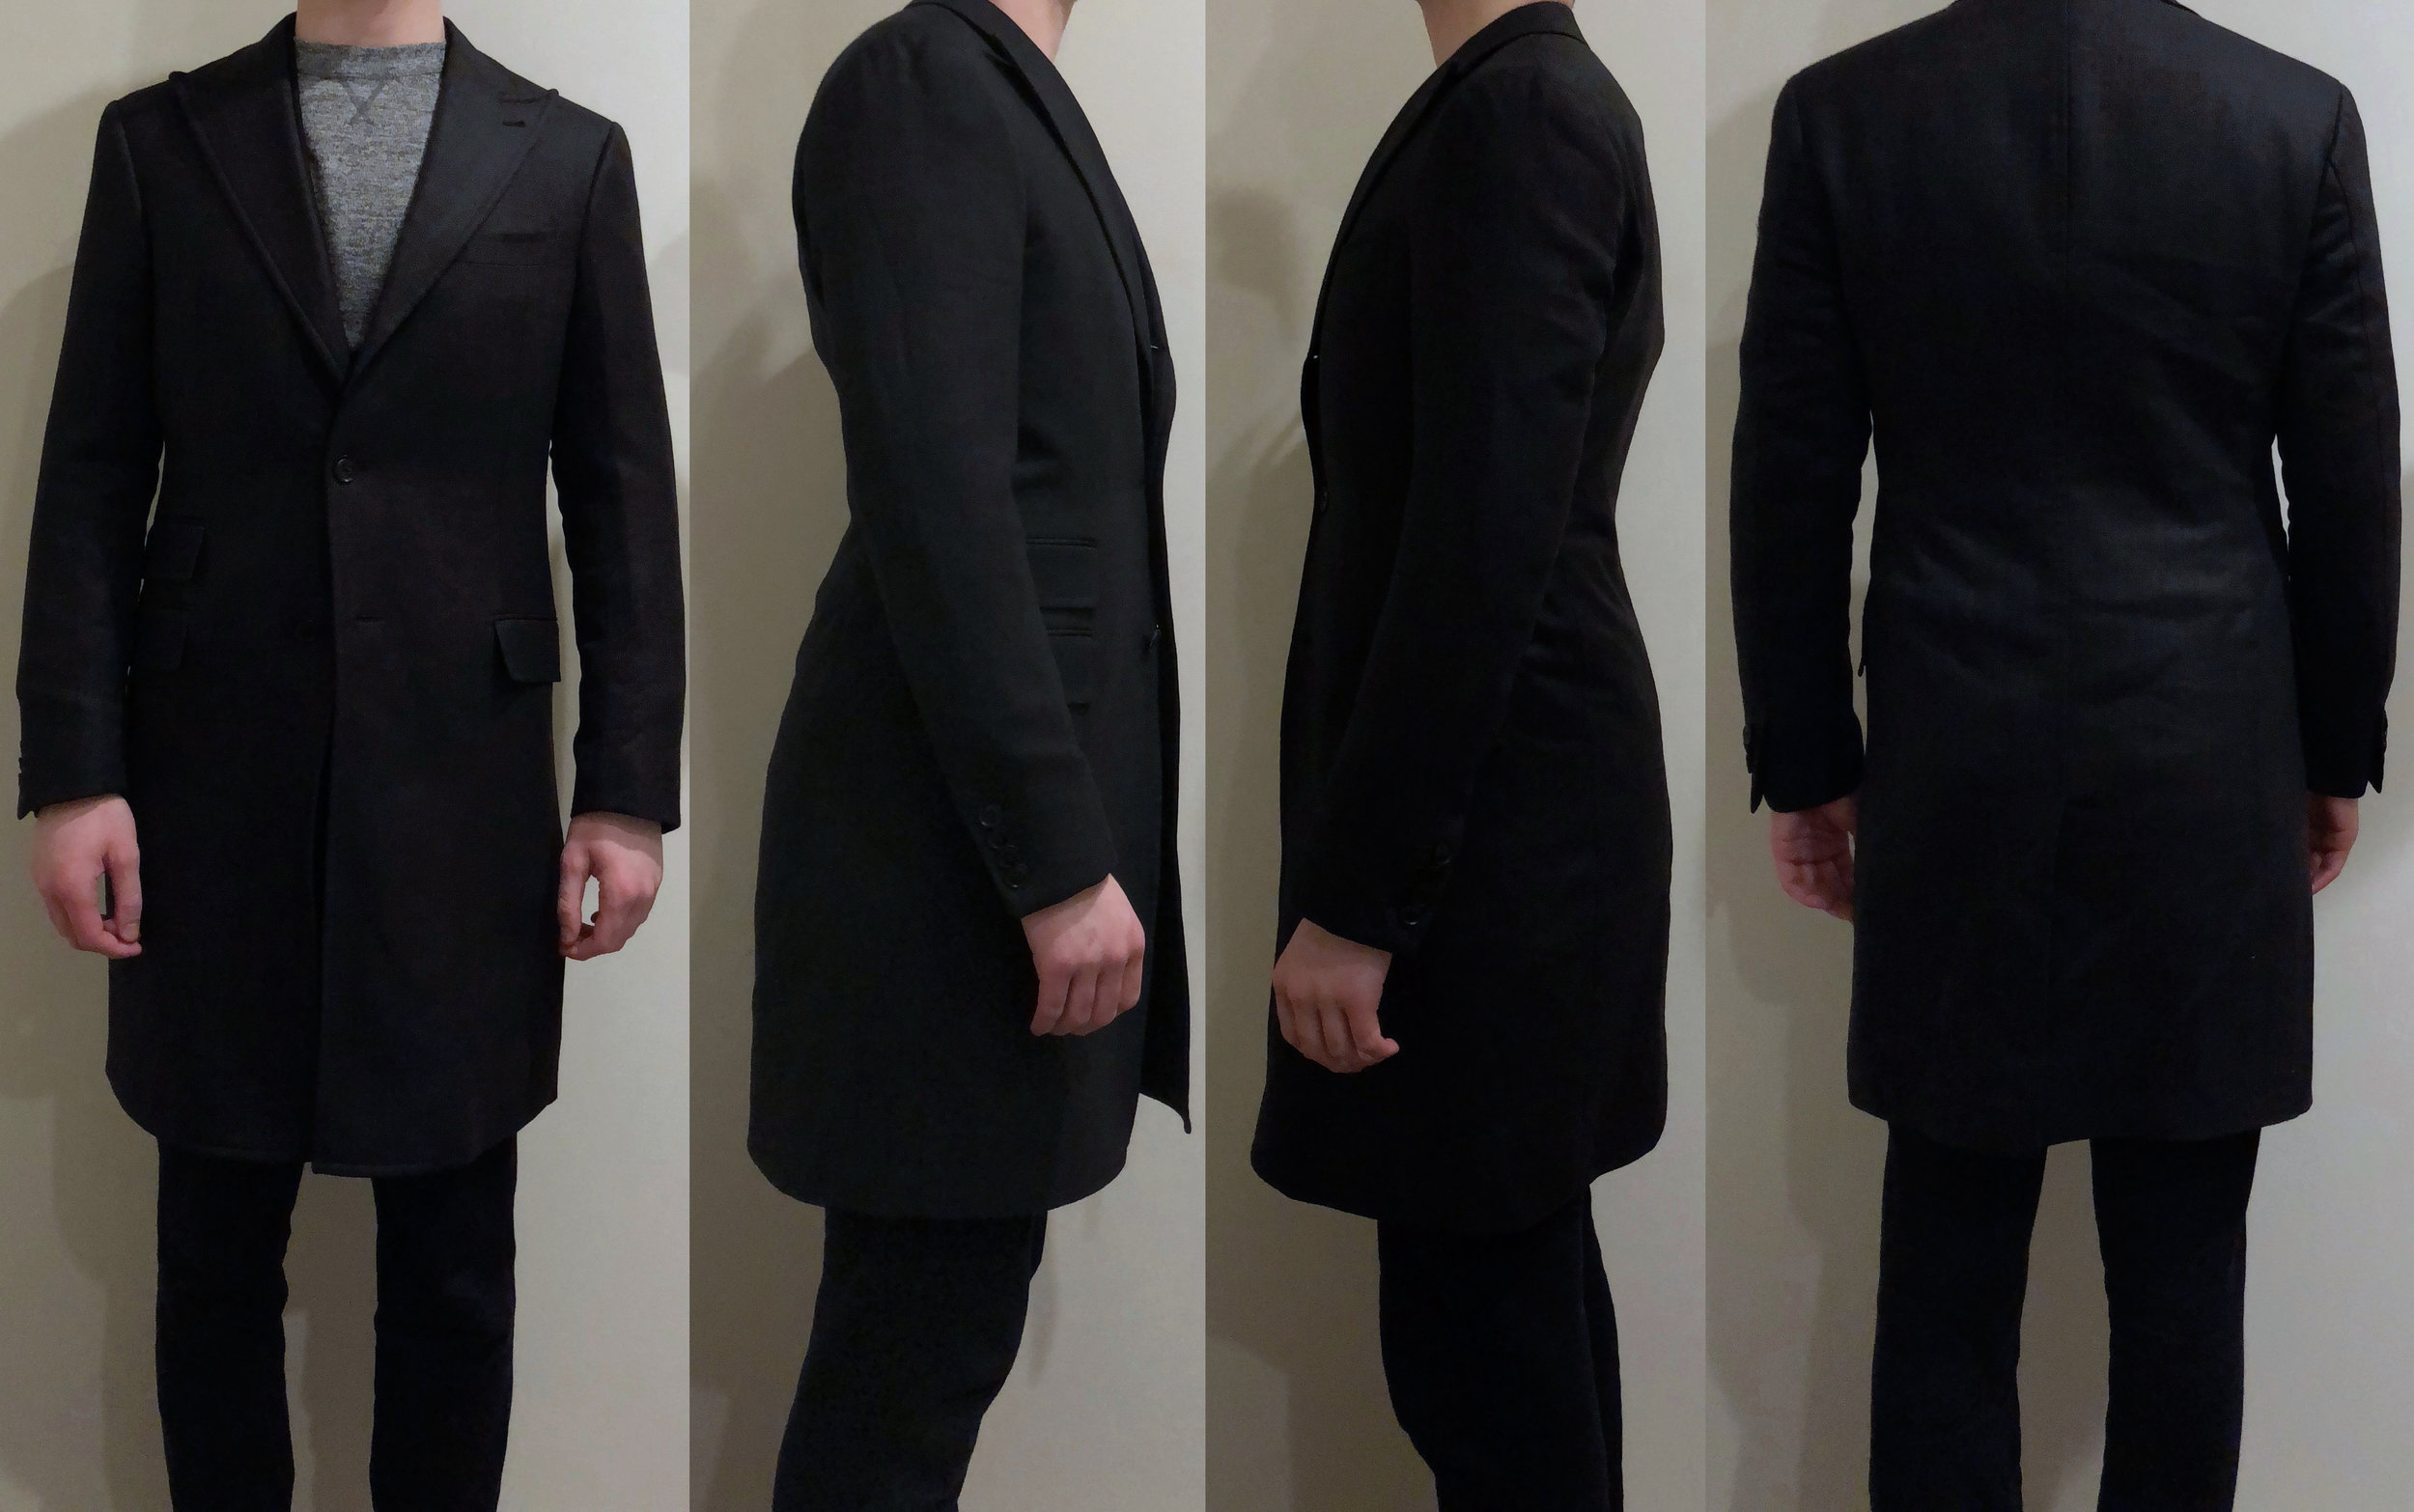 Final fitting pictures, with suit jacket (and sweatshirt, sorry) beneath